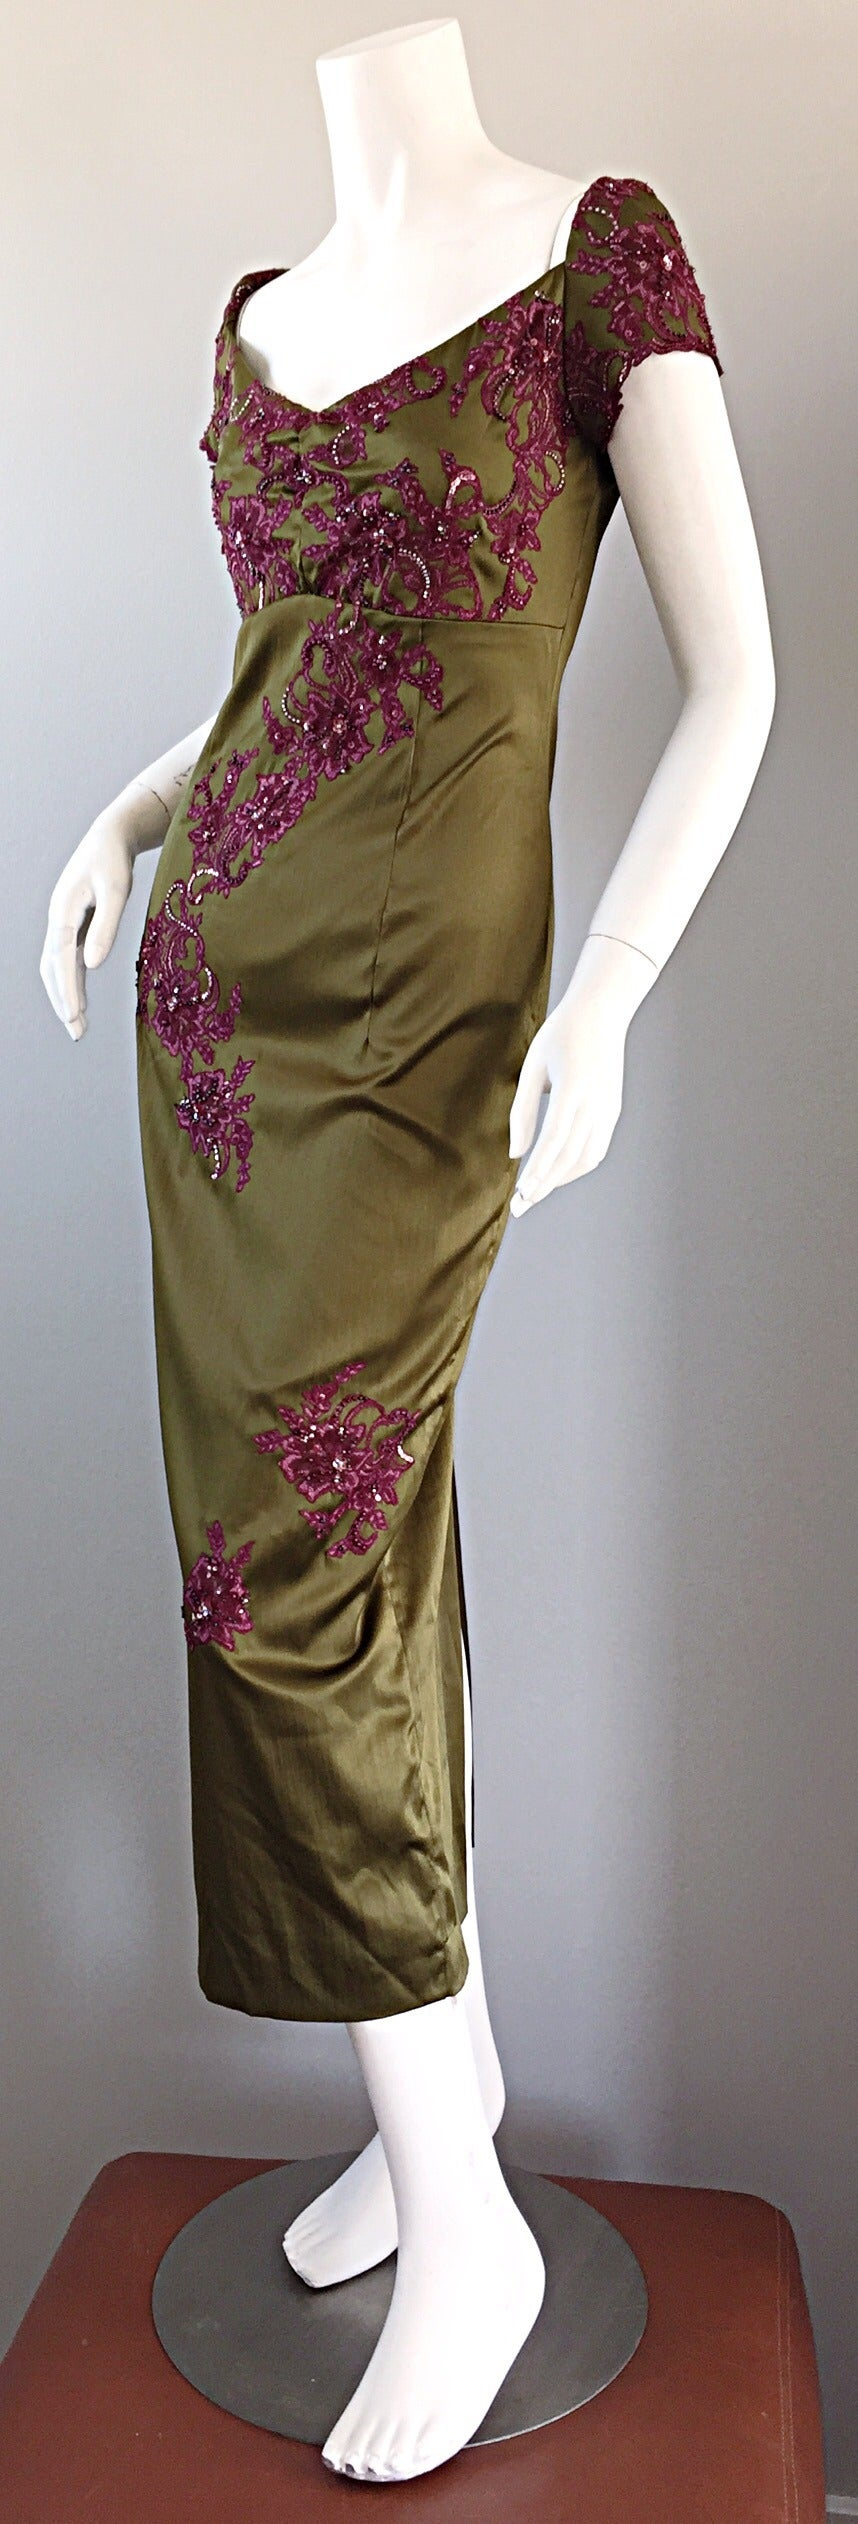 Beautiful Mandalay Chartreuse Merlot Sz 6 Silk Bombshell Dress w/ Beading & Lace In Excellent Condition For Sale In Chicago, IL